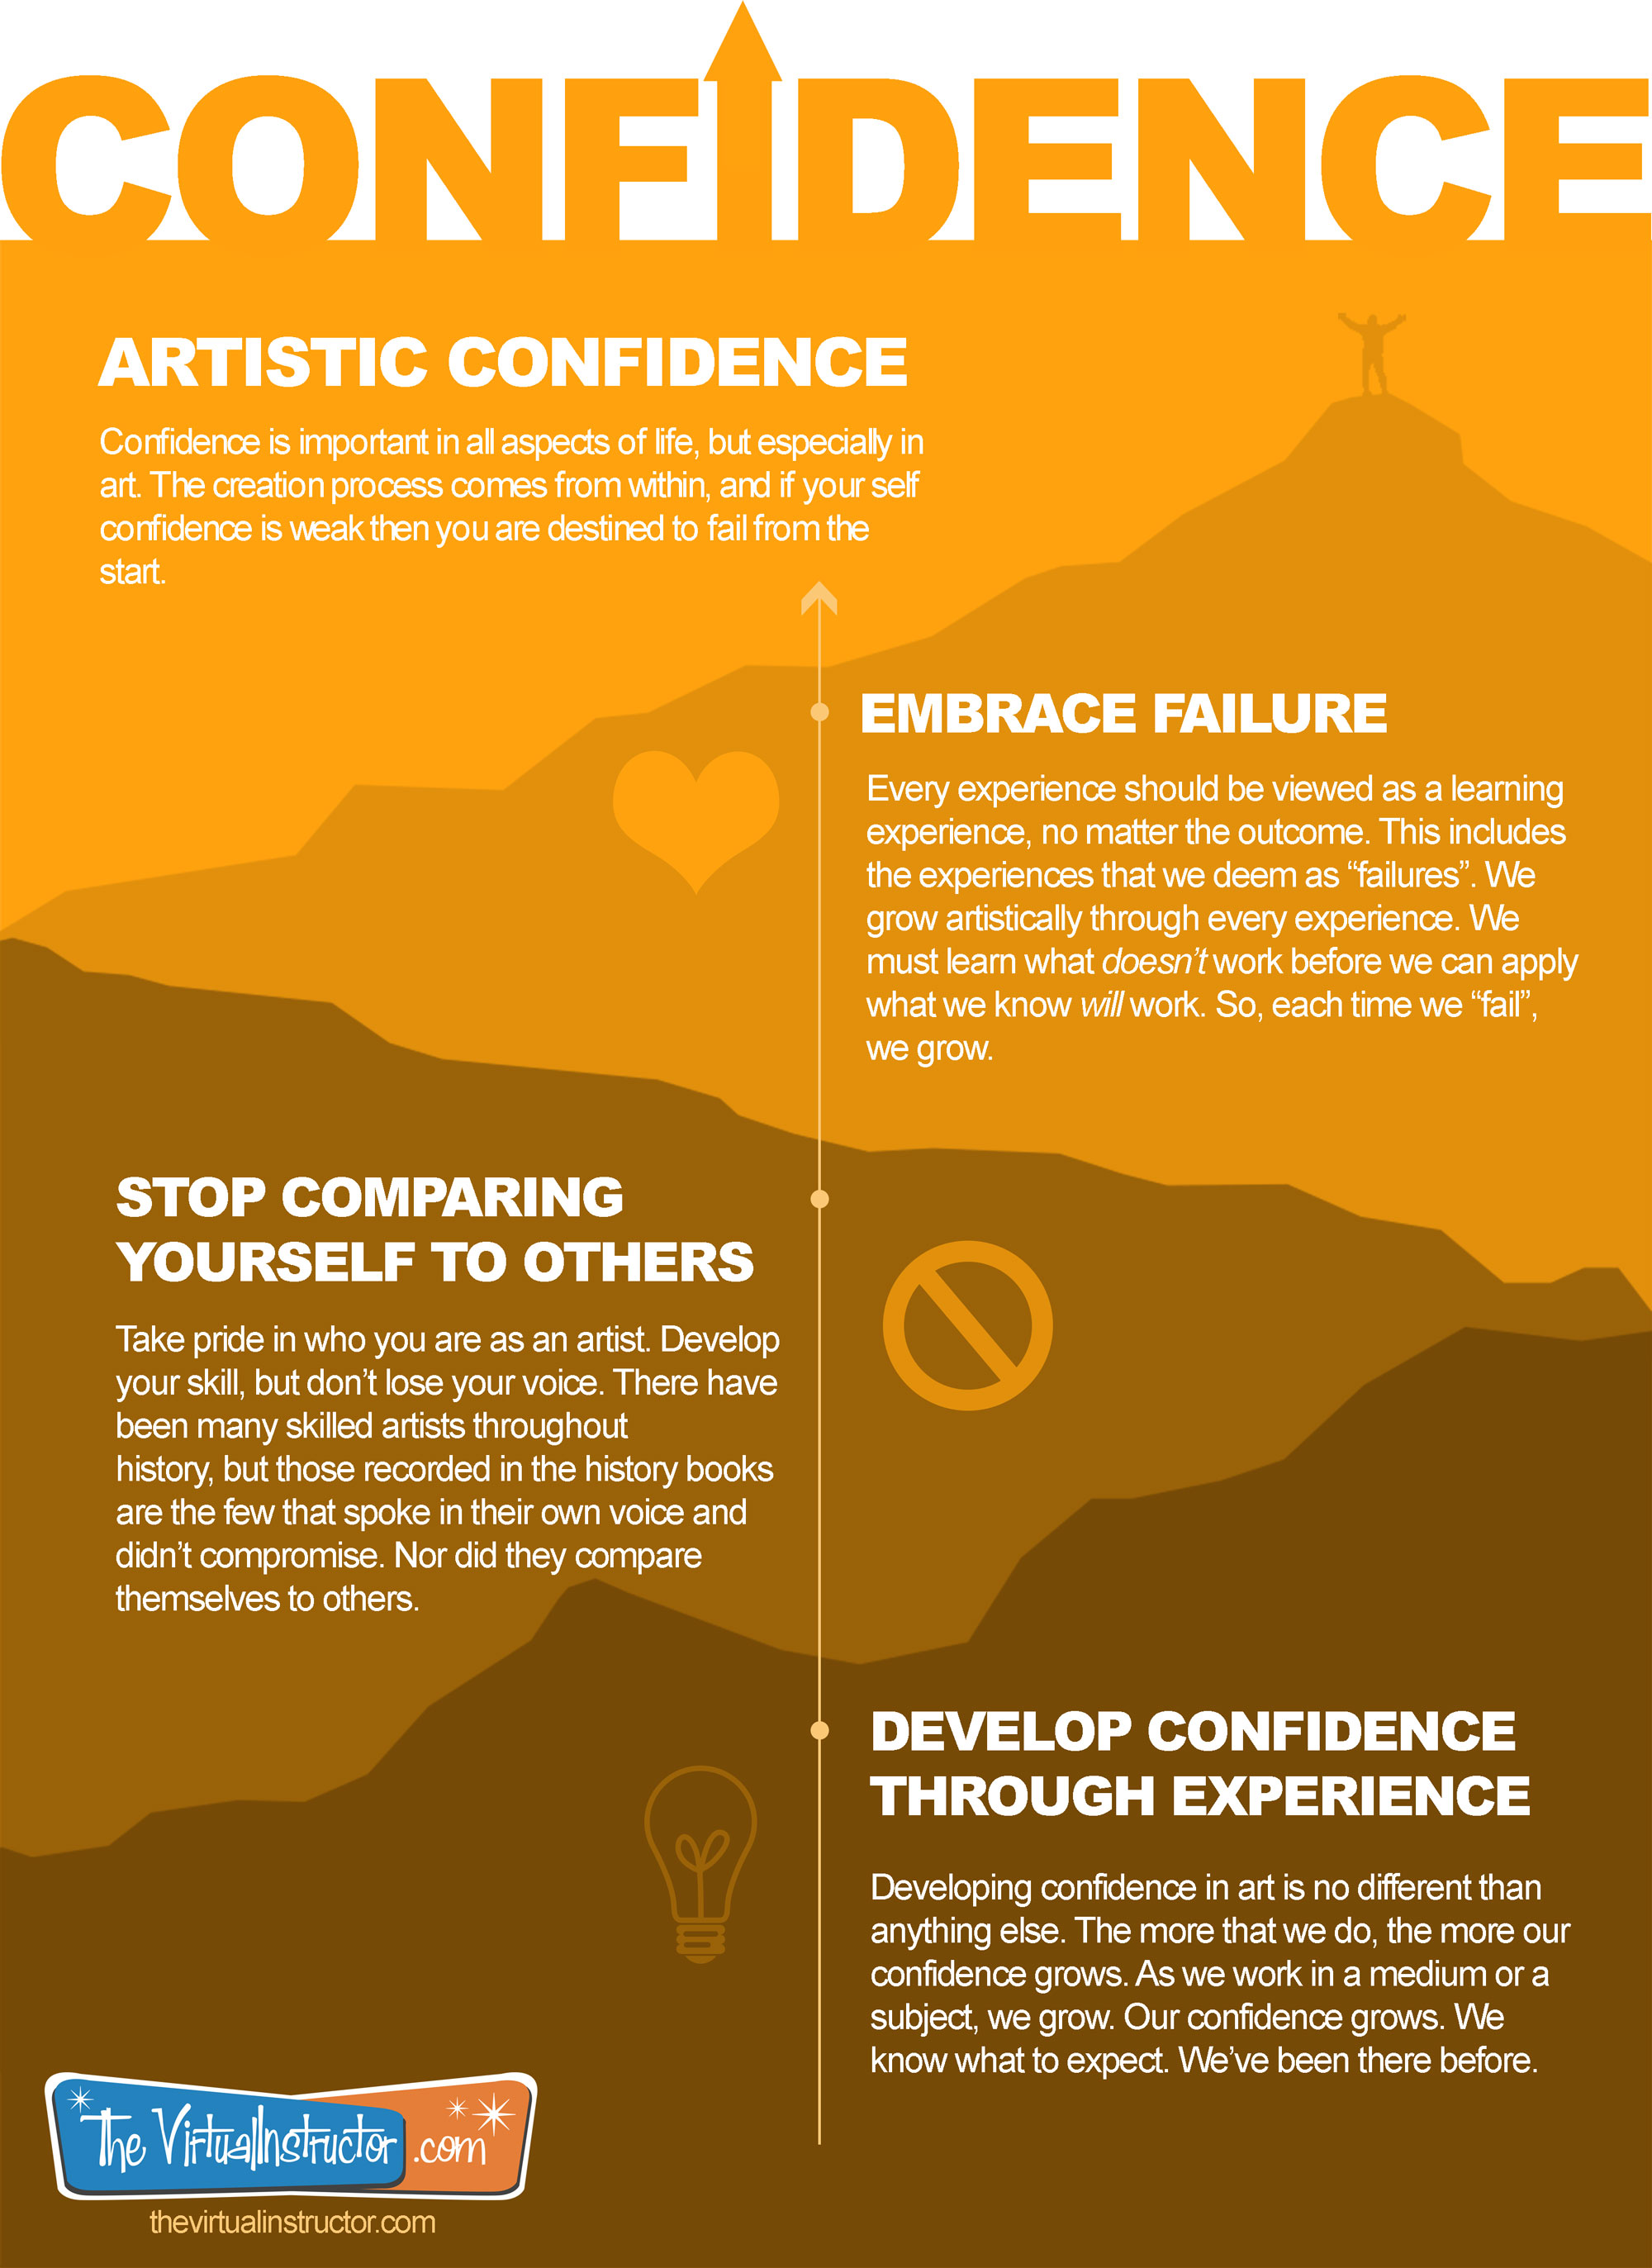 How to Grow Your Artistic Confidence Infographic